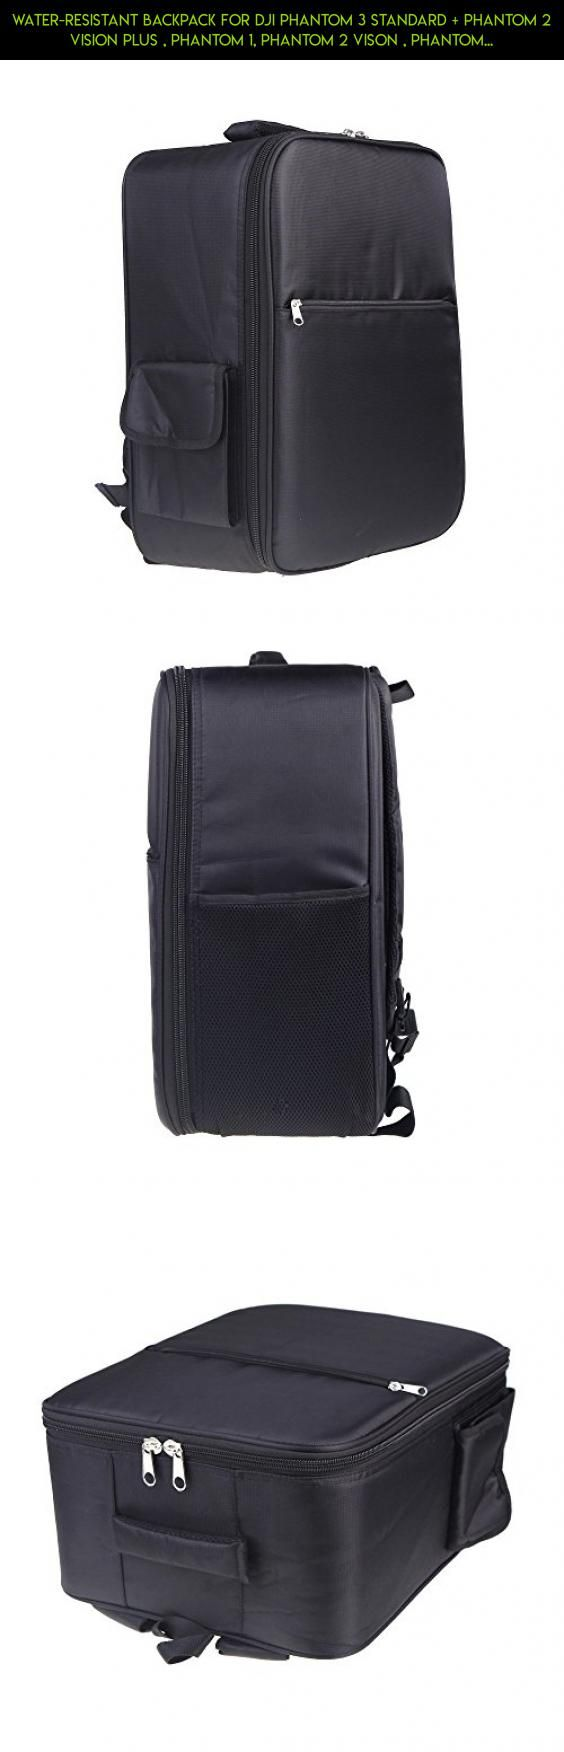 Water-Resistant Backpack for DJI Phantom 3 Standard + Phantom 2 Vision Plus , Phantom 1, Phantom 2 Vison , Phantom FC40, Fits Extra Accessories, GoPro and Laptop #parts #gadgets #standard #products #fpv #plans #3 #technology #tech #drone #camera #shopping #dji #case #racing #phantom #kit